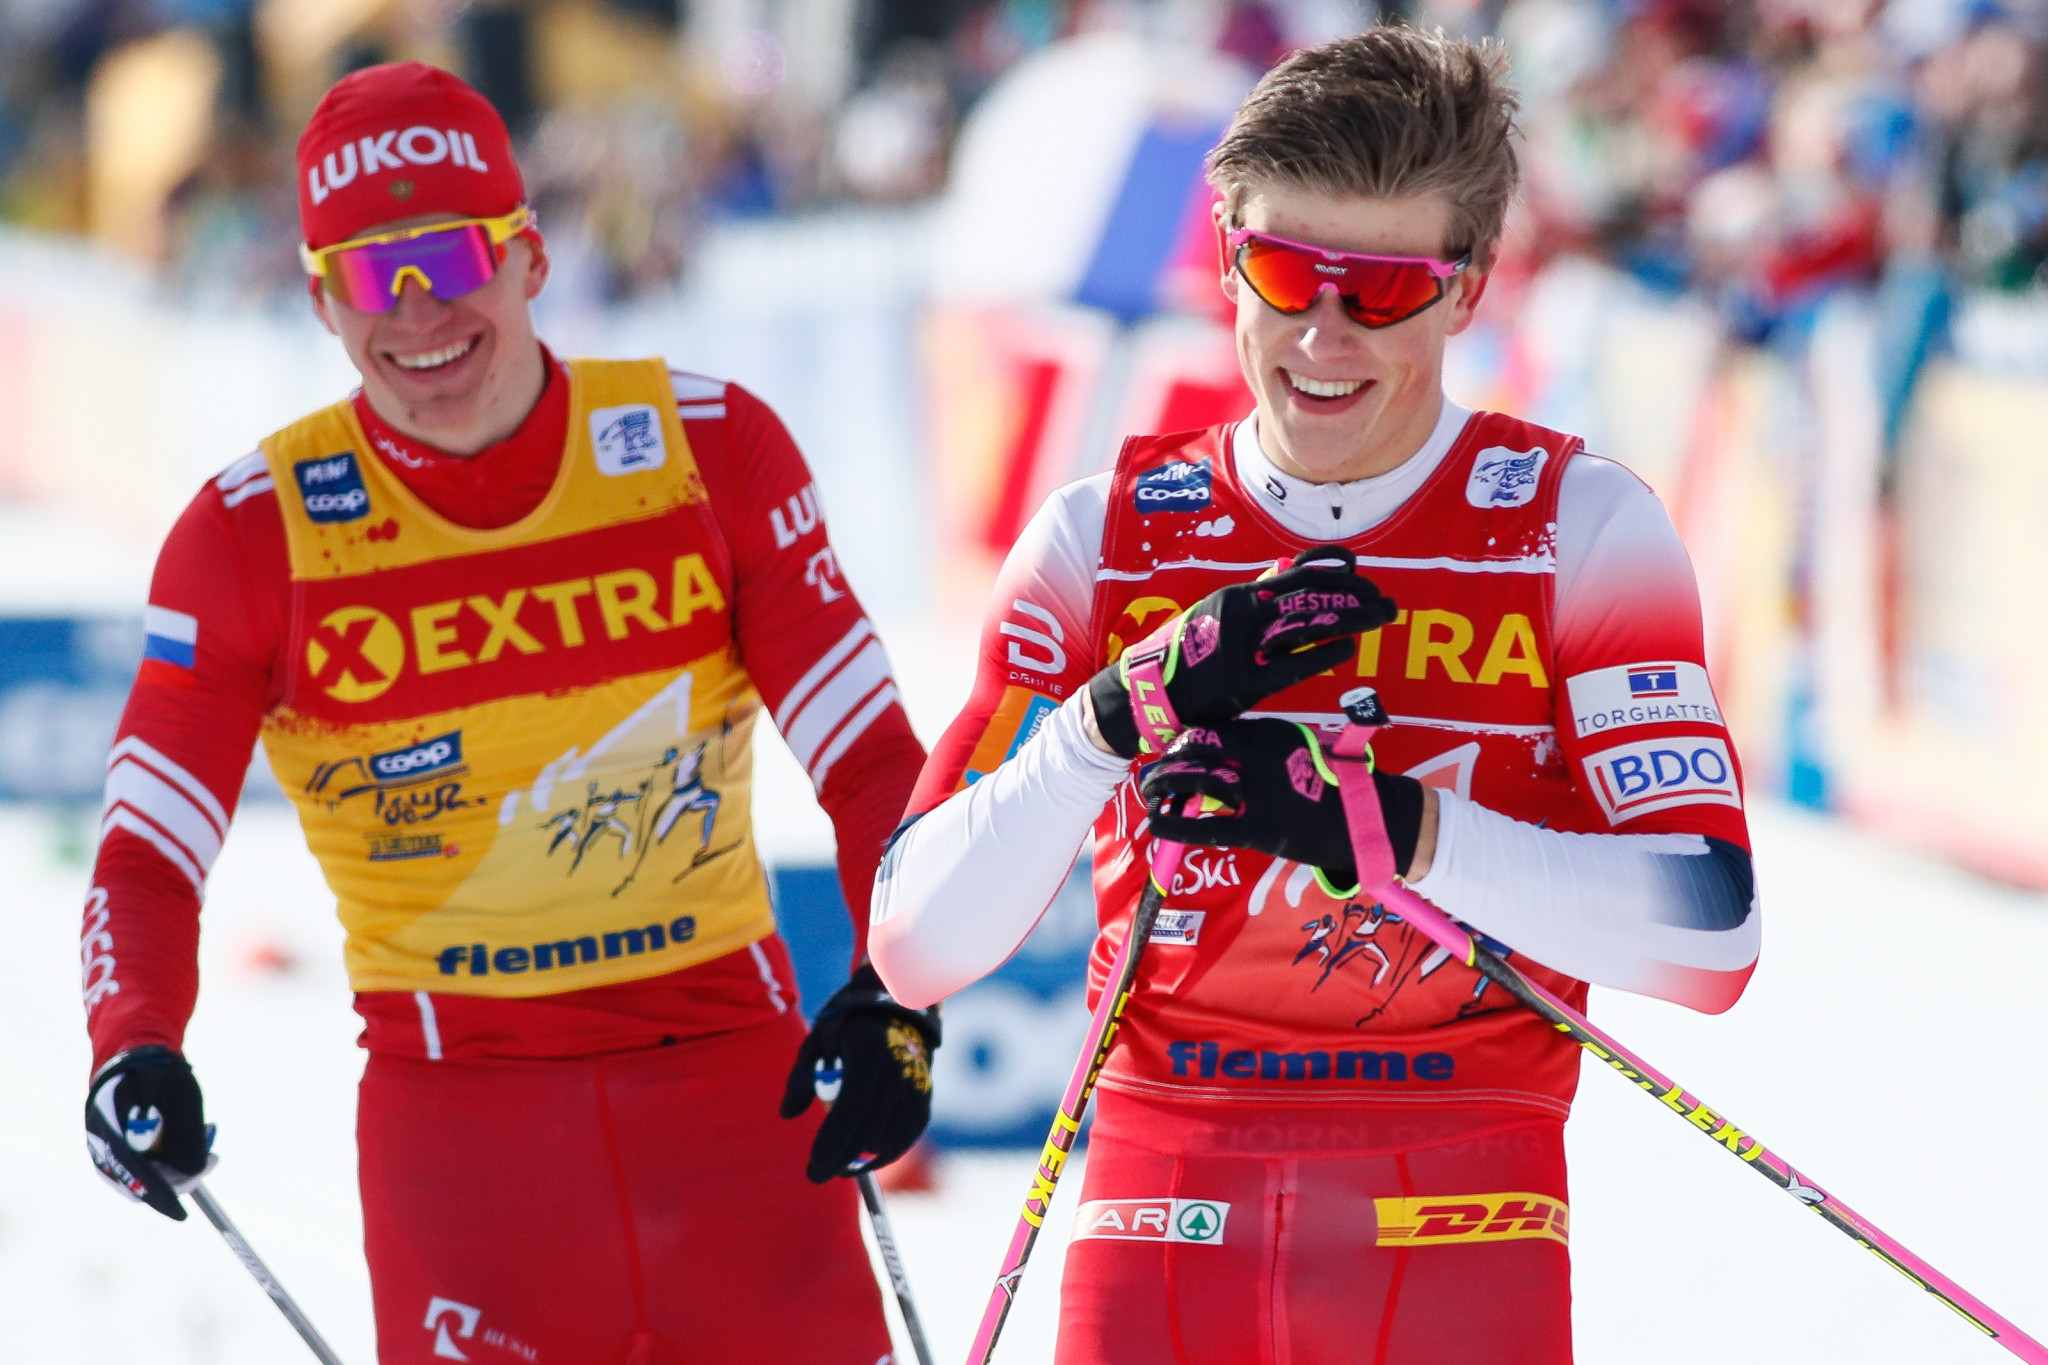 Klæbo edges into overall Tour de Ski lead with second grand final win in Val di Fiemme